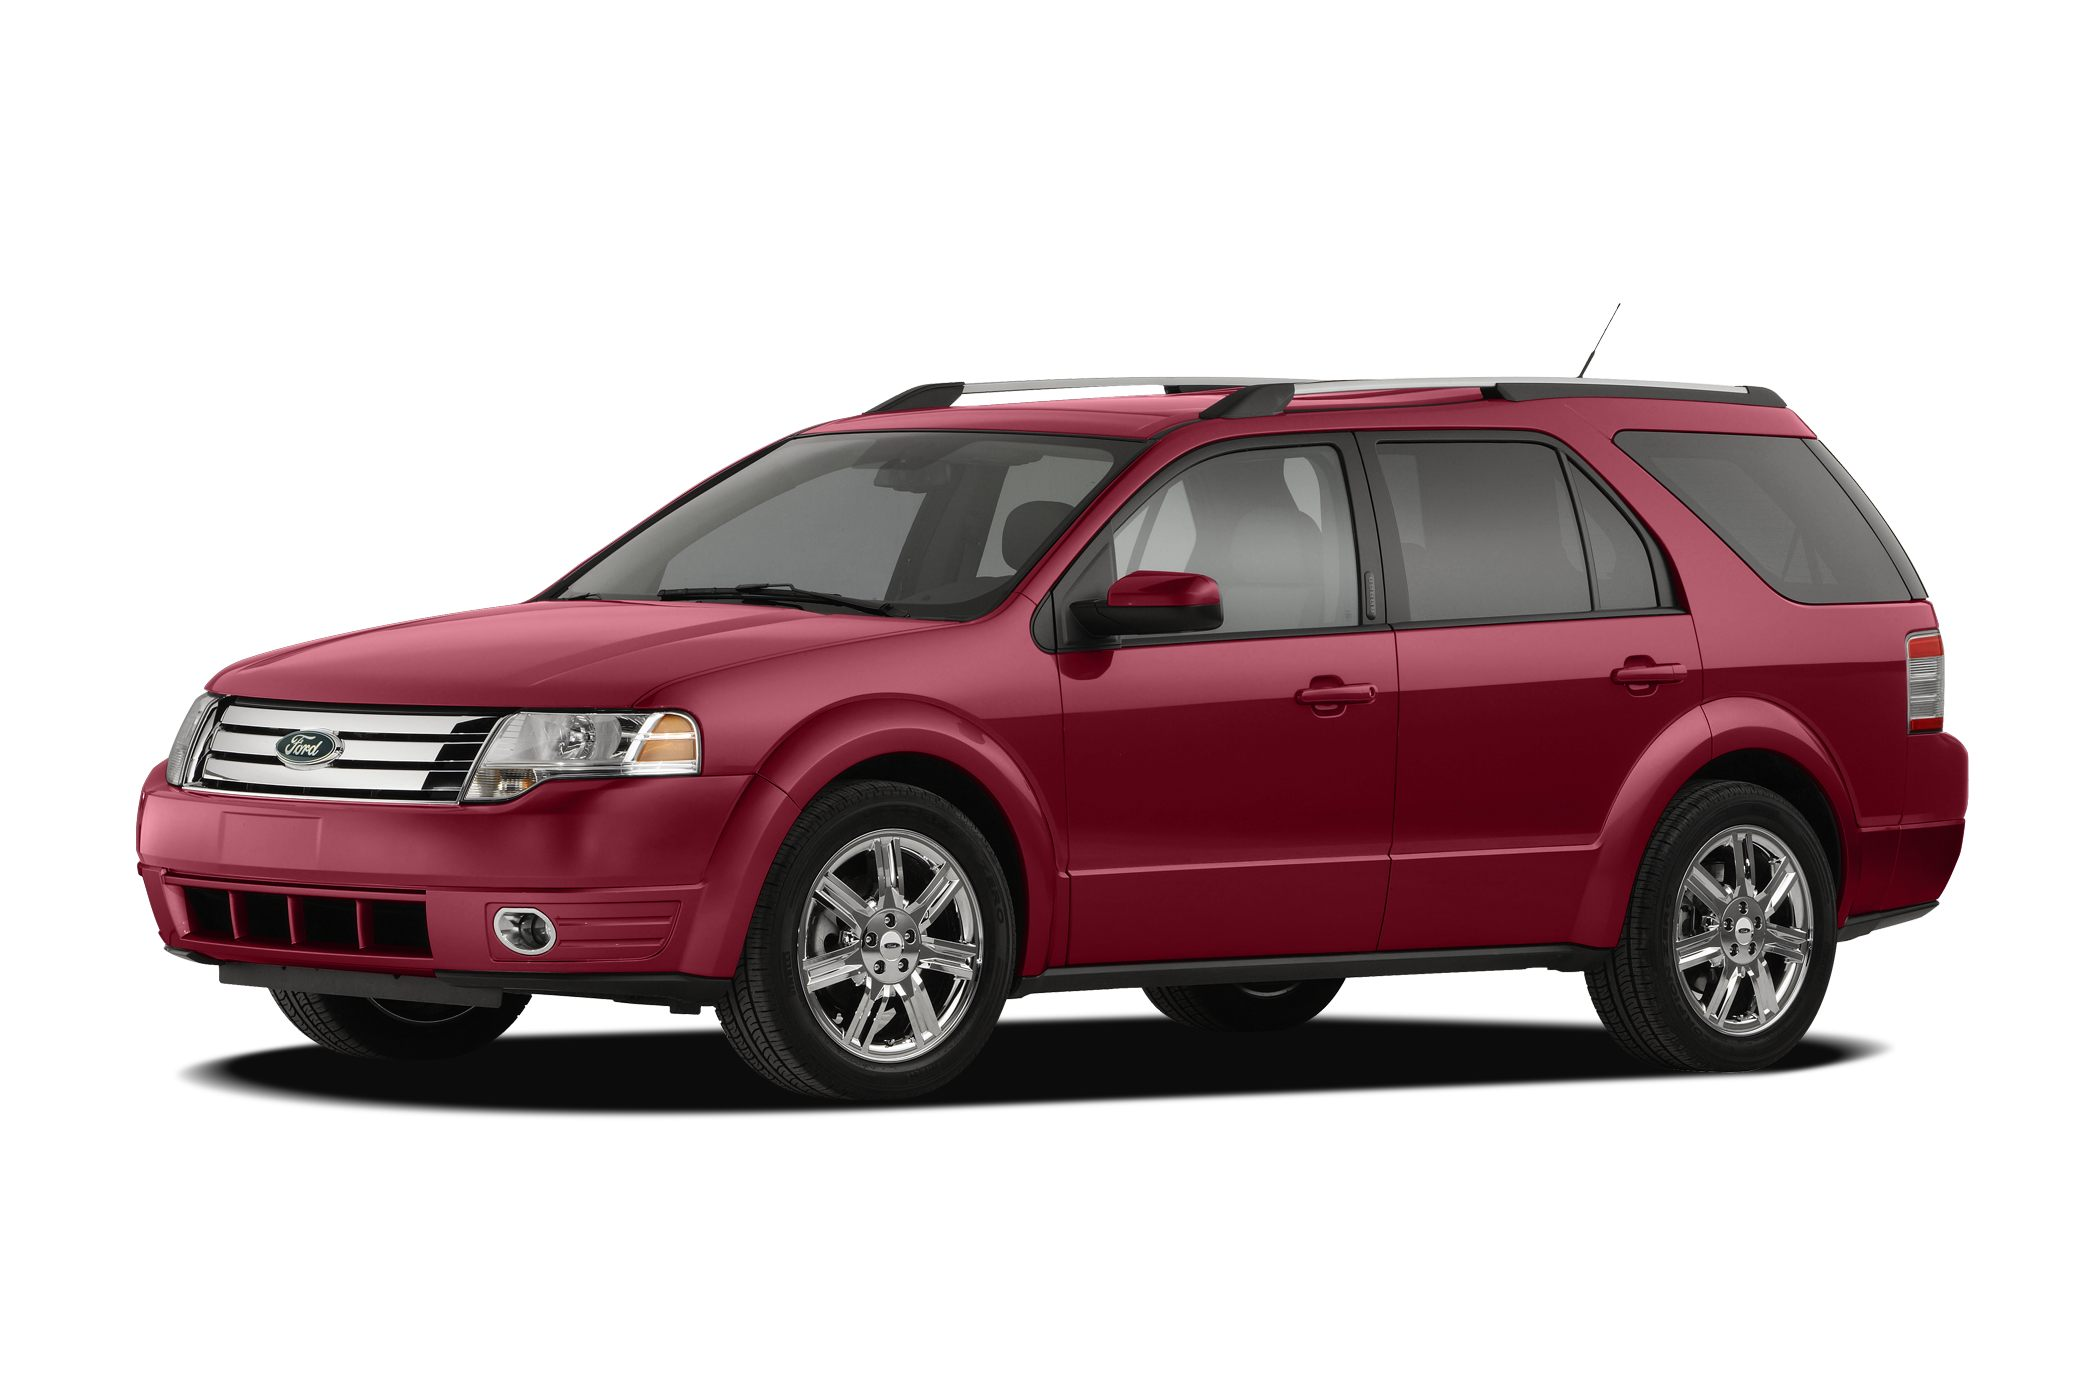 2008 Ford Taurus X Limited SUV for sale in Somerset for $12,688 with 63,958 miles.